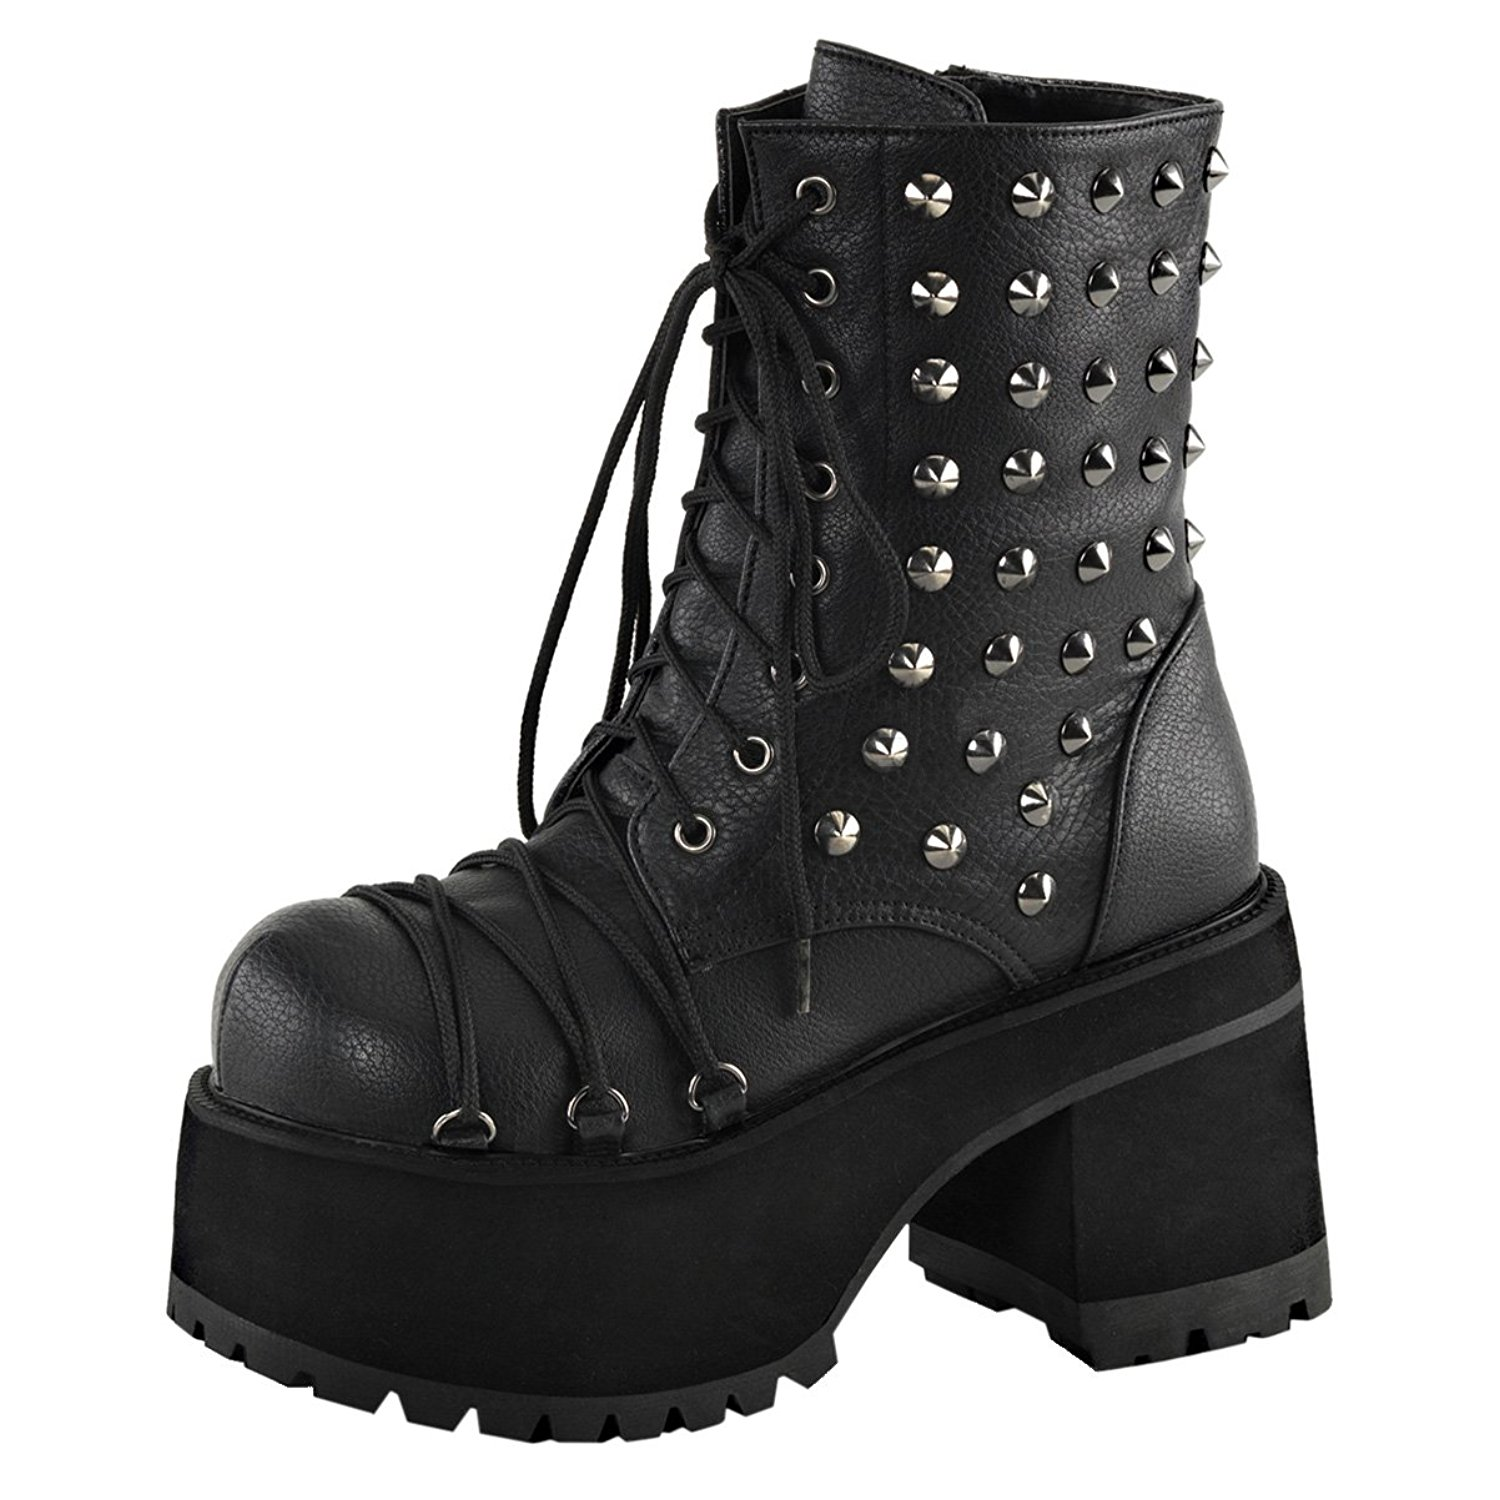 6540cc25295 Get Quotations · Summitfashions Womens Studded Combat Boots Platform Shoes  Ankle Boots Lace up 4 inch Heels